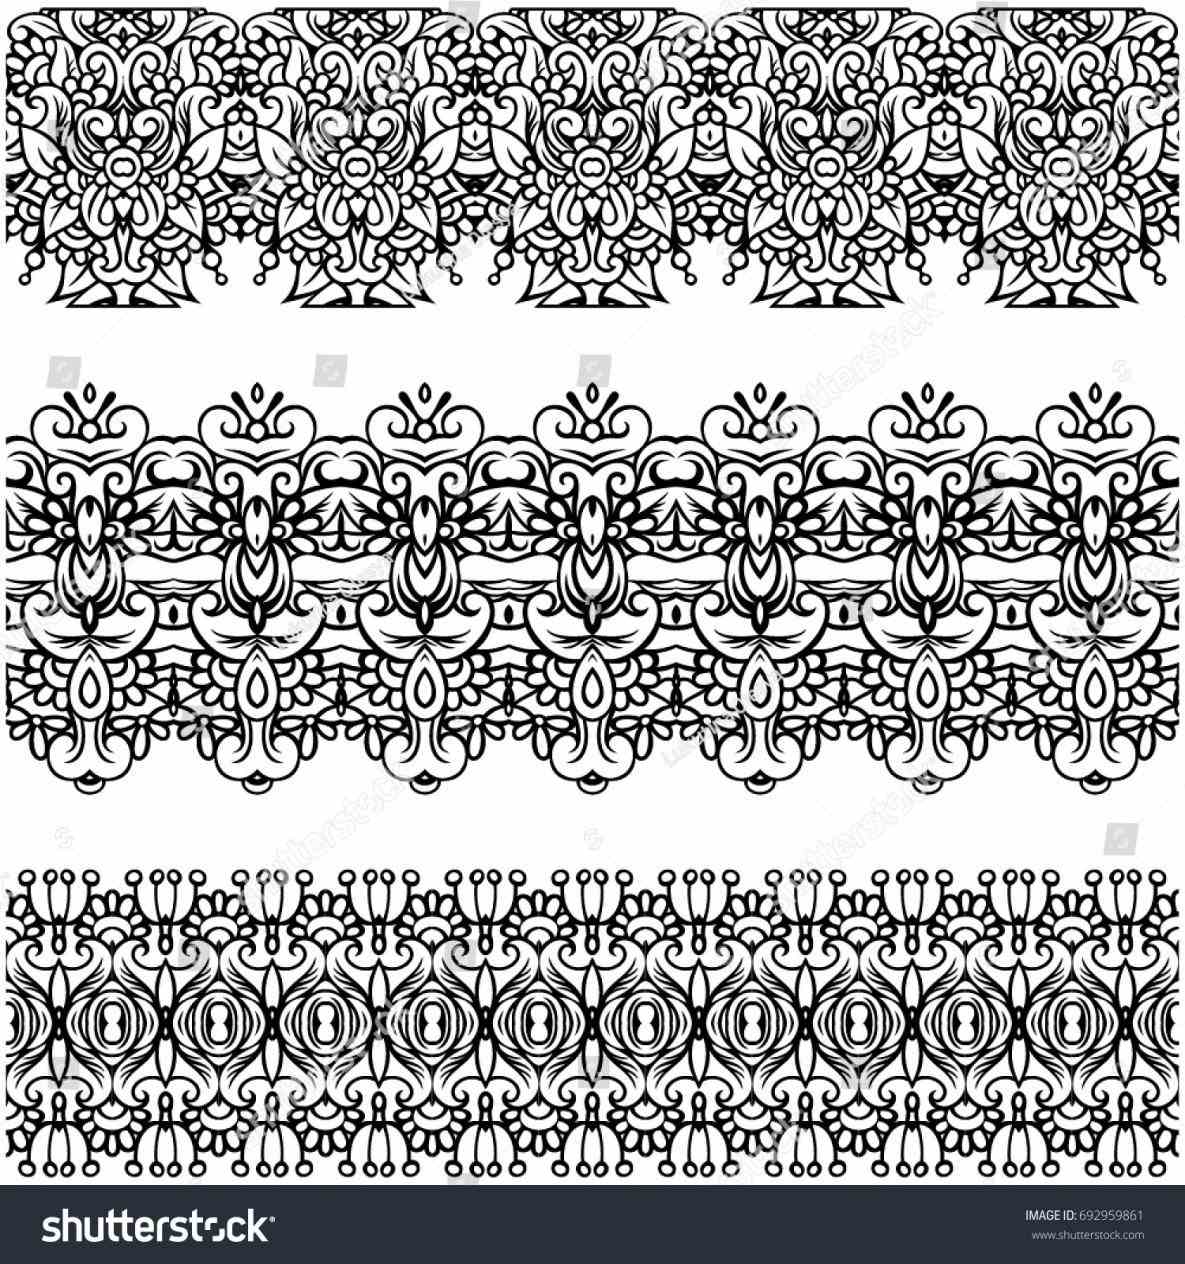 1185x1264 Lace Vector Free Illustrator Trims Elements Can Be Stock